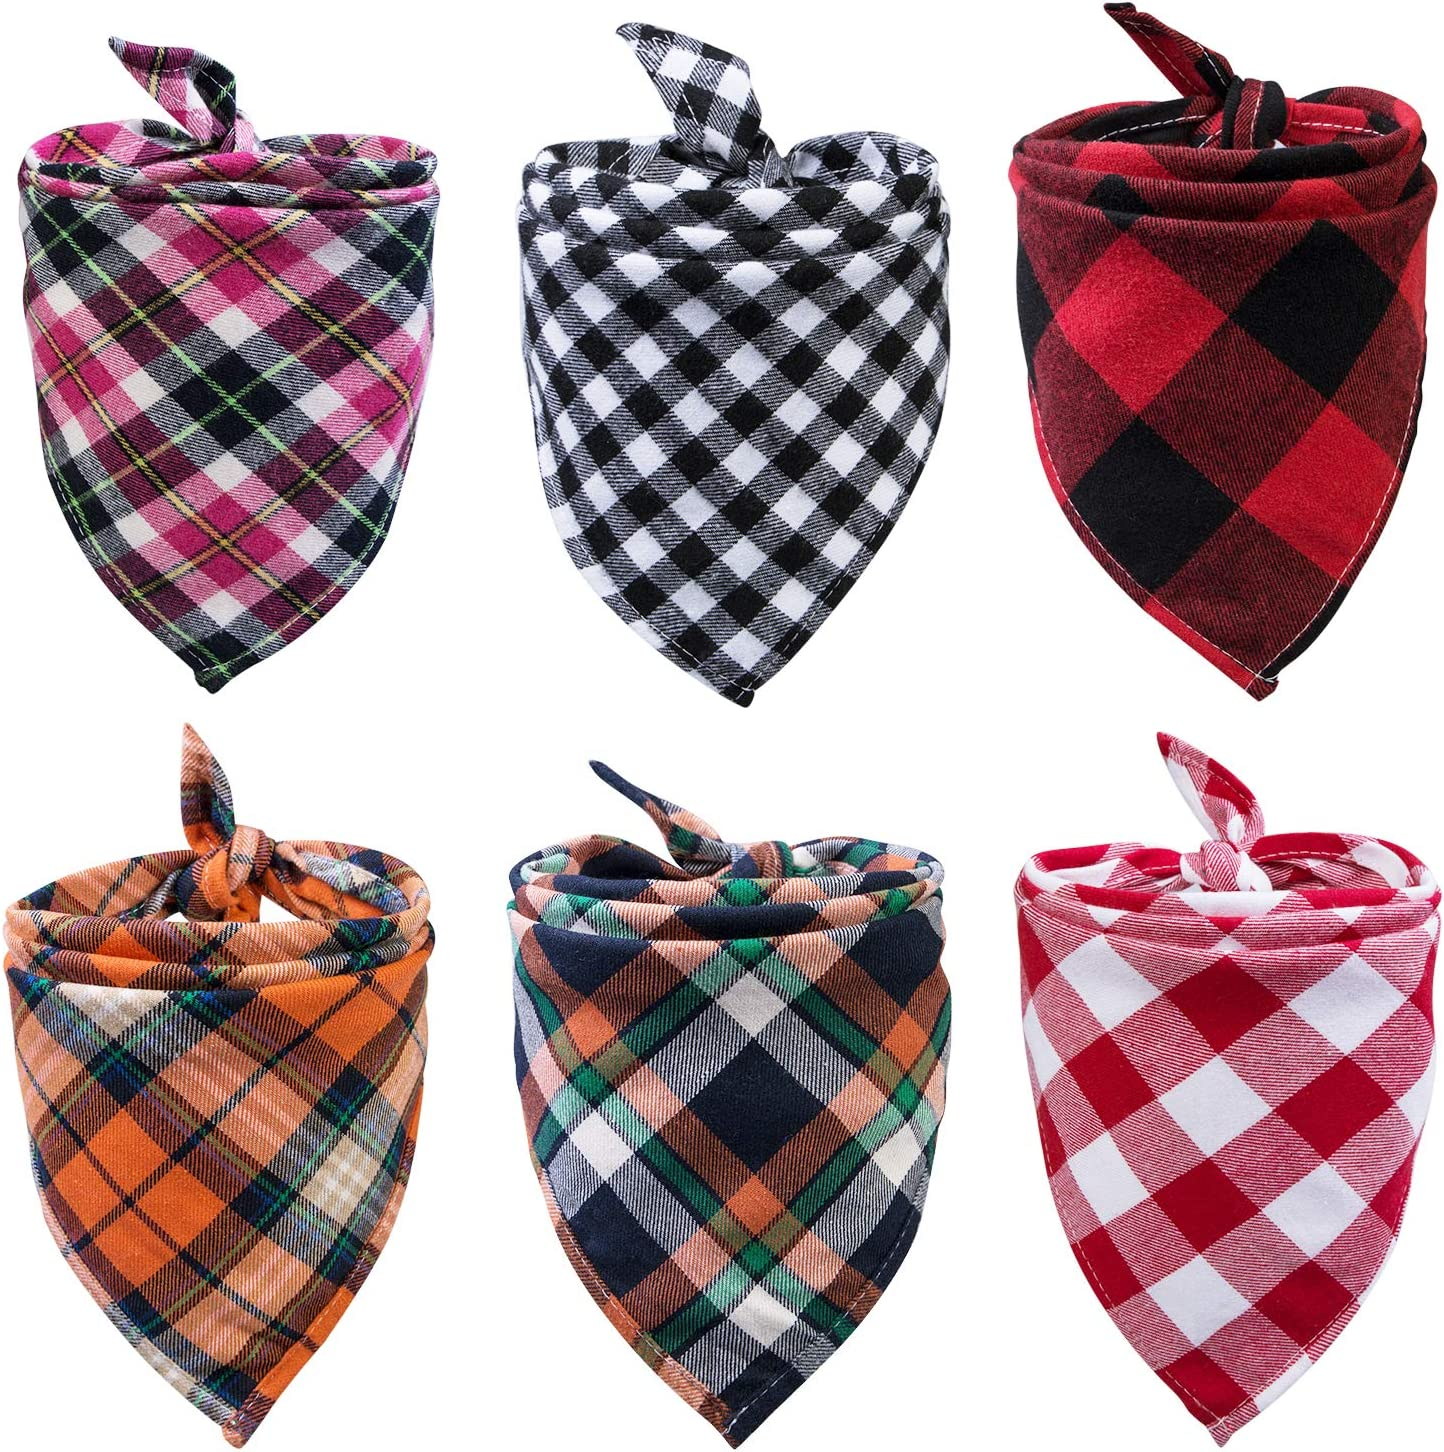 6 Pack of Dog Bandana Washable Reversible Triangle Bibs Scarf, Plaid Painting Kerchief for Small/Medium Dogs and Cats : Pet Supplies